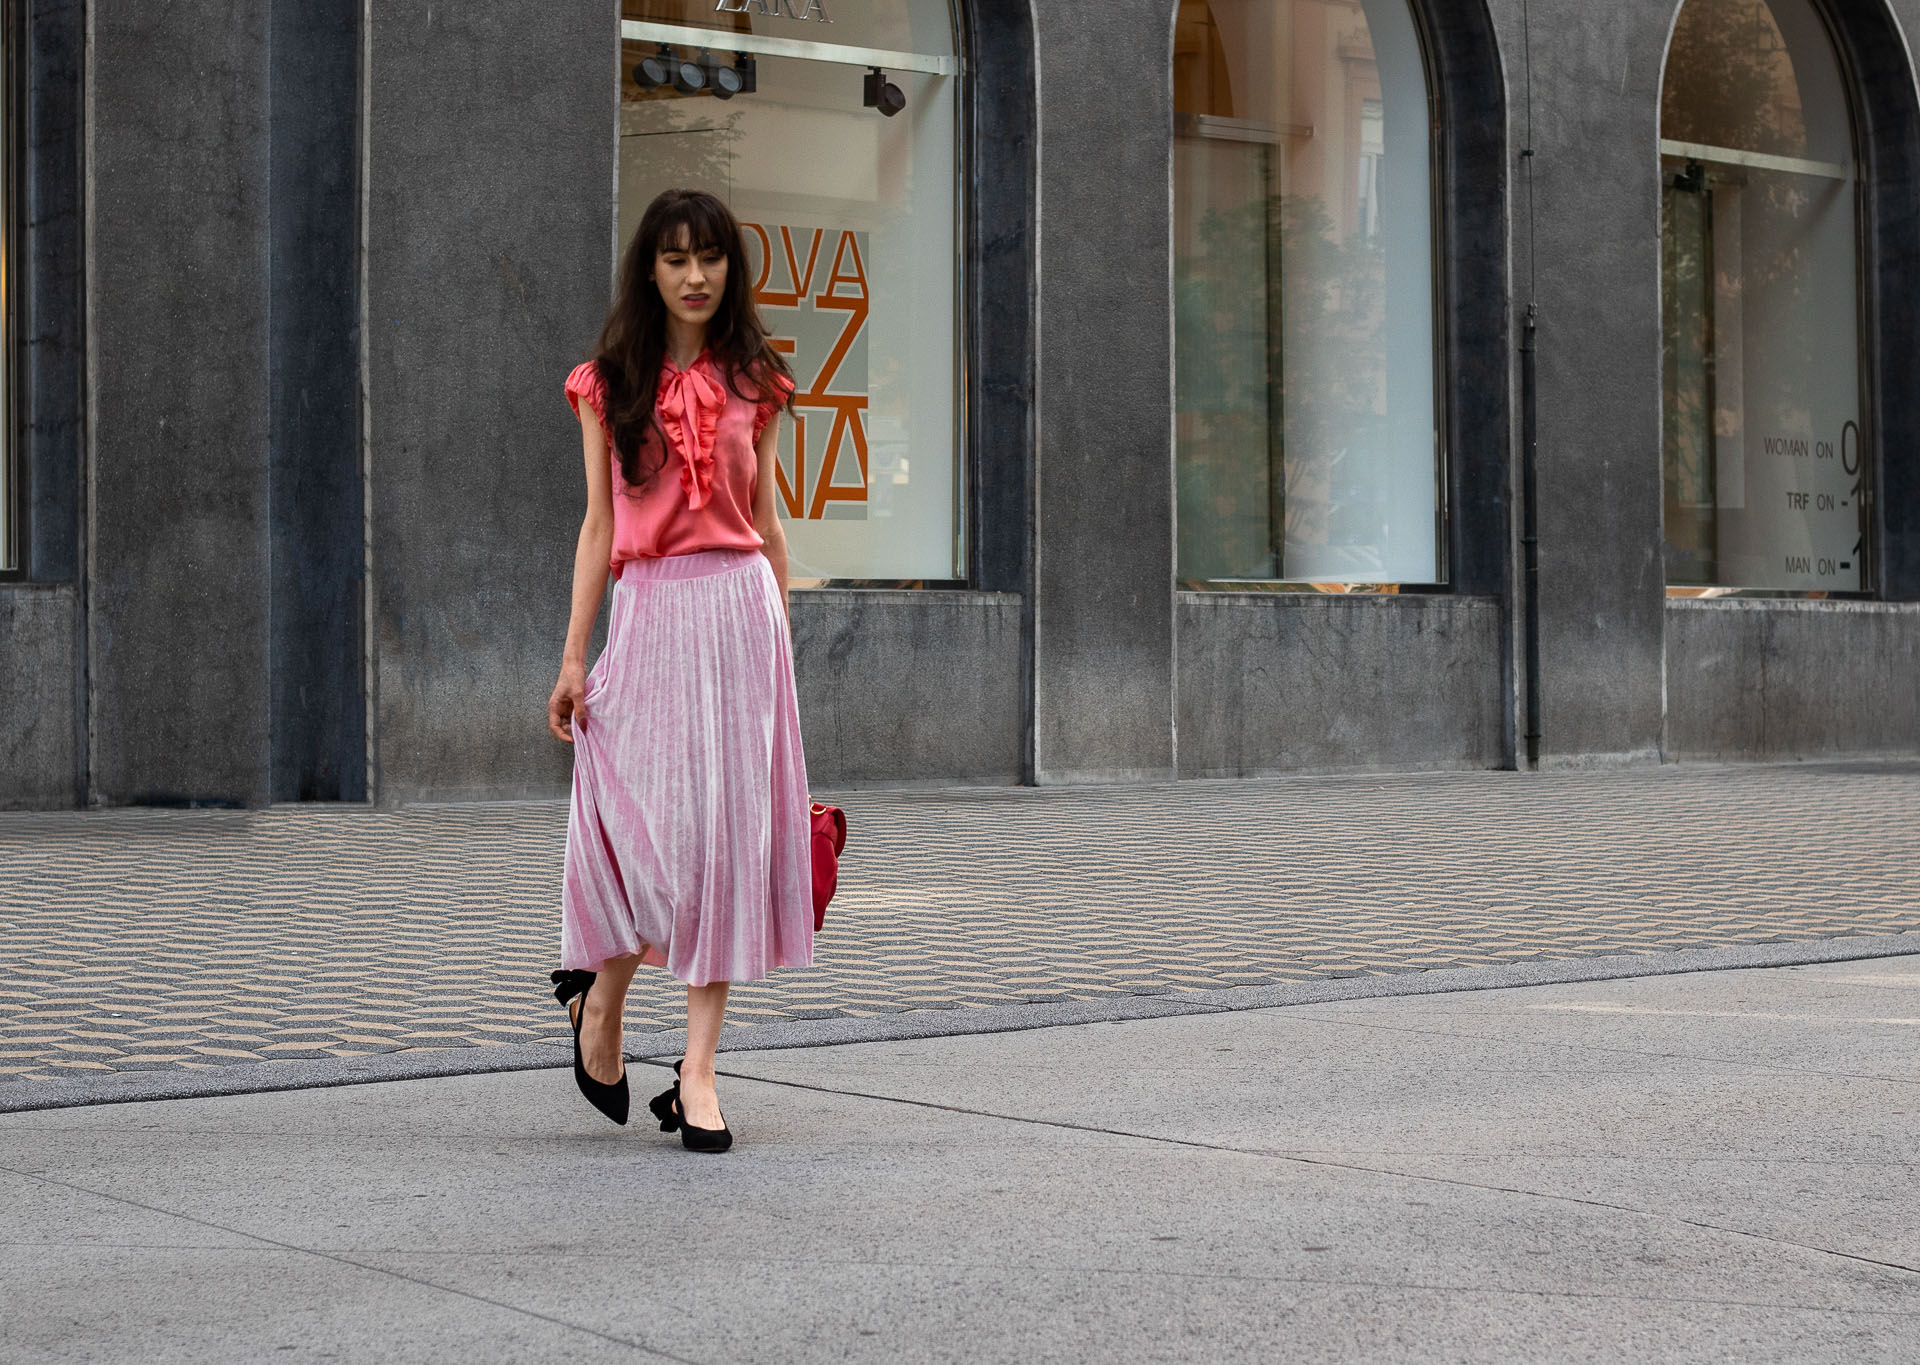 IT Girl Fashion Blogger Veronika Lipar of Brunette from Wall Street wearing coral pink floppy tie blouse pink pleated midi skirt Ganni slingbacks pink top handle bag for work in summer